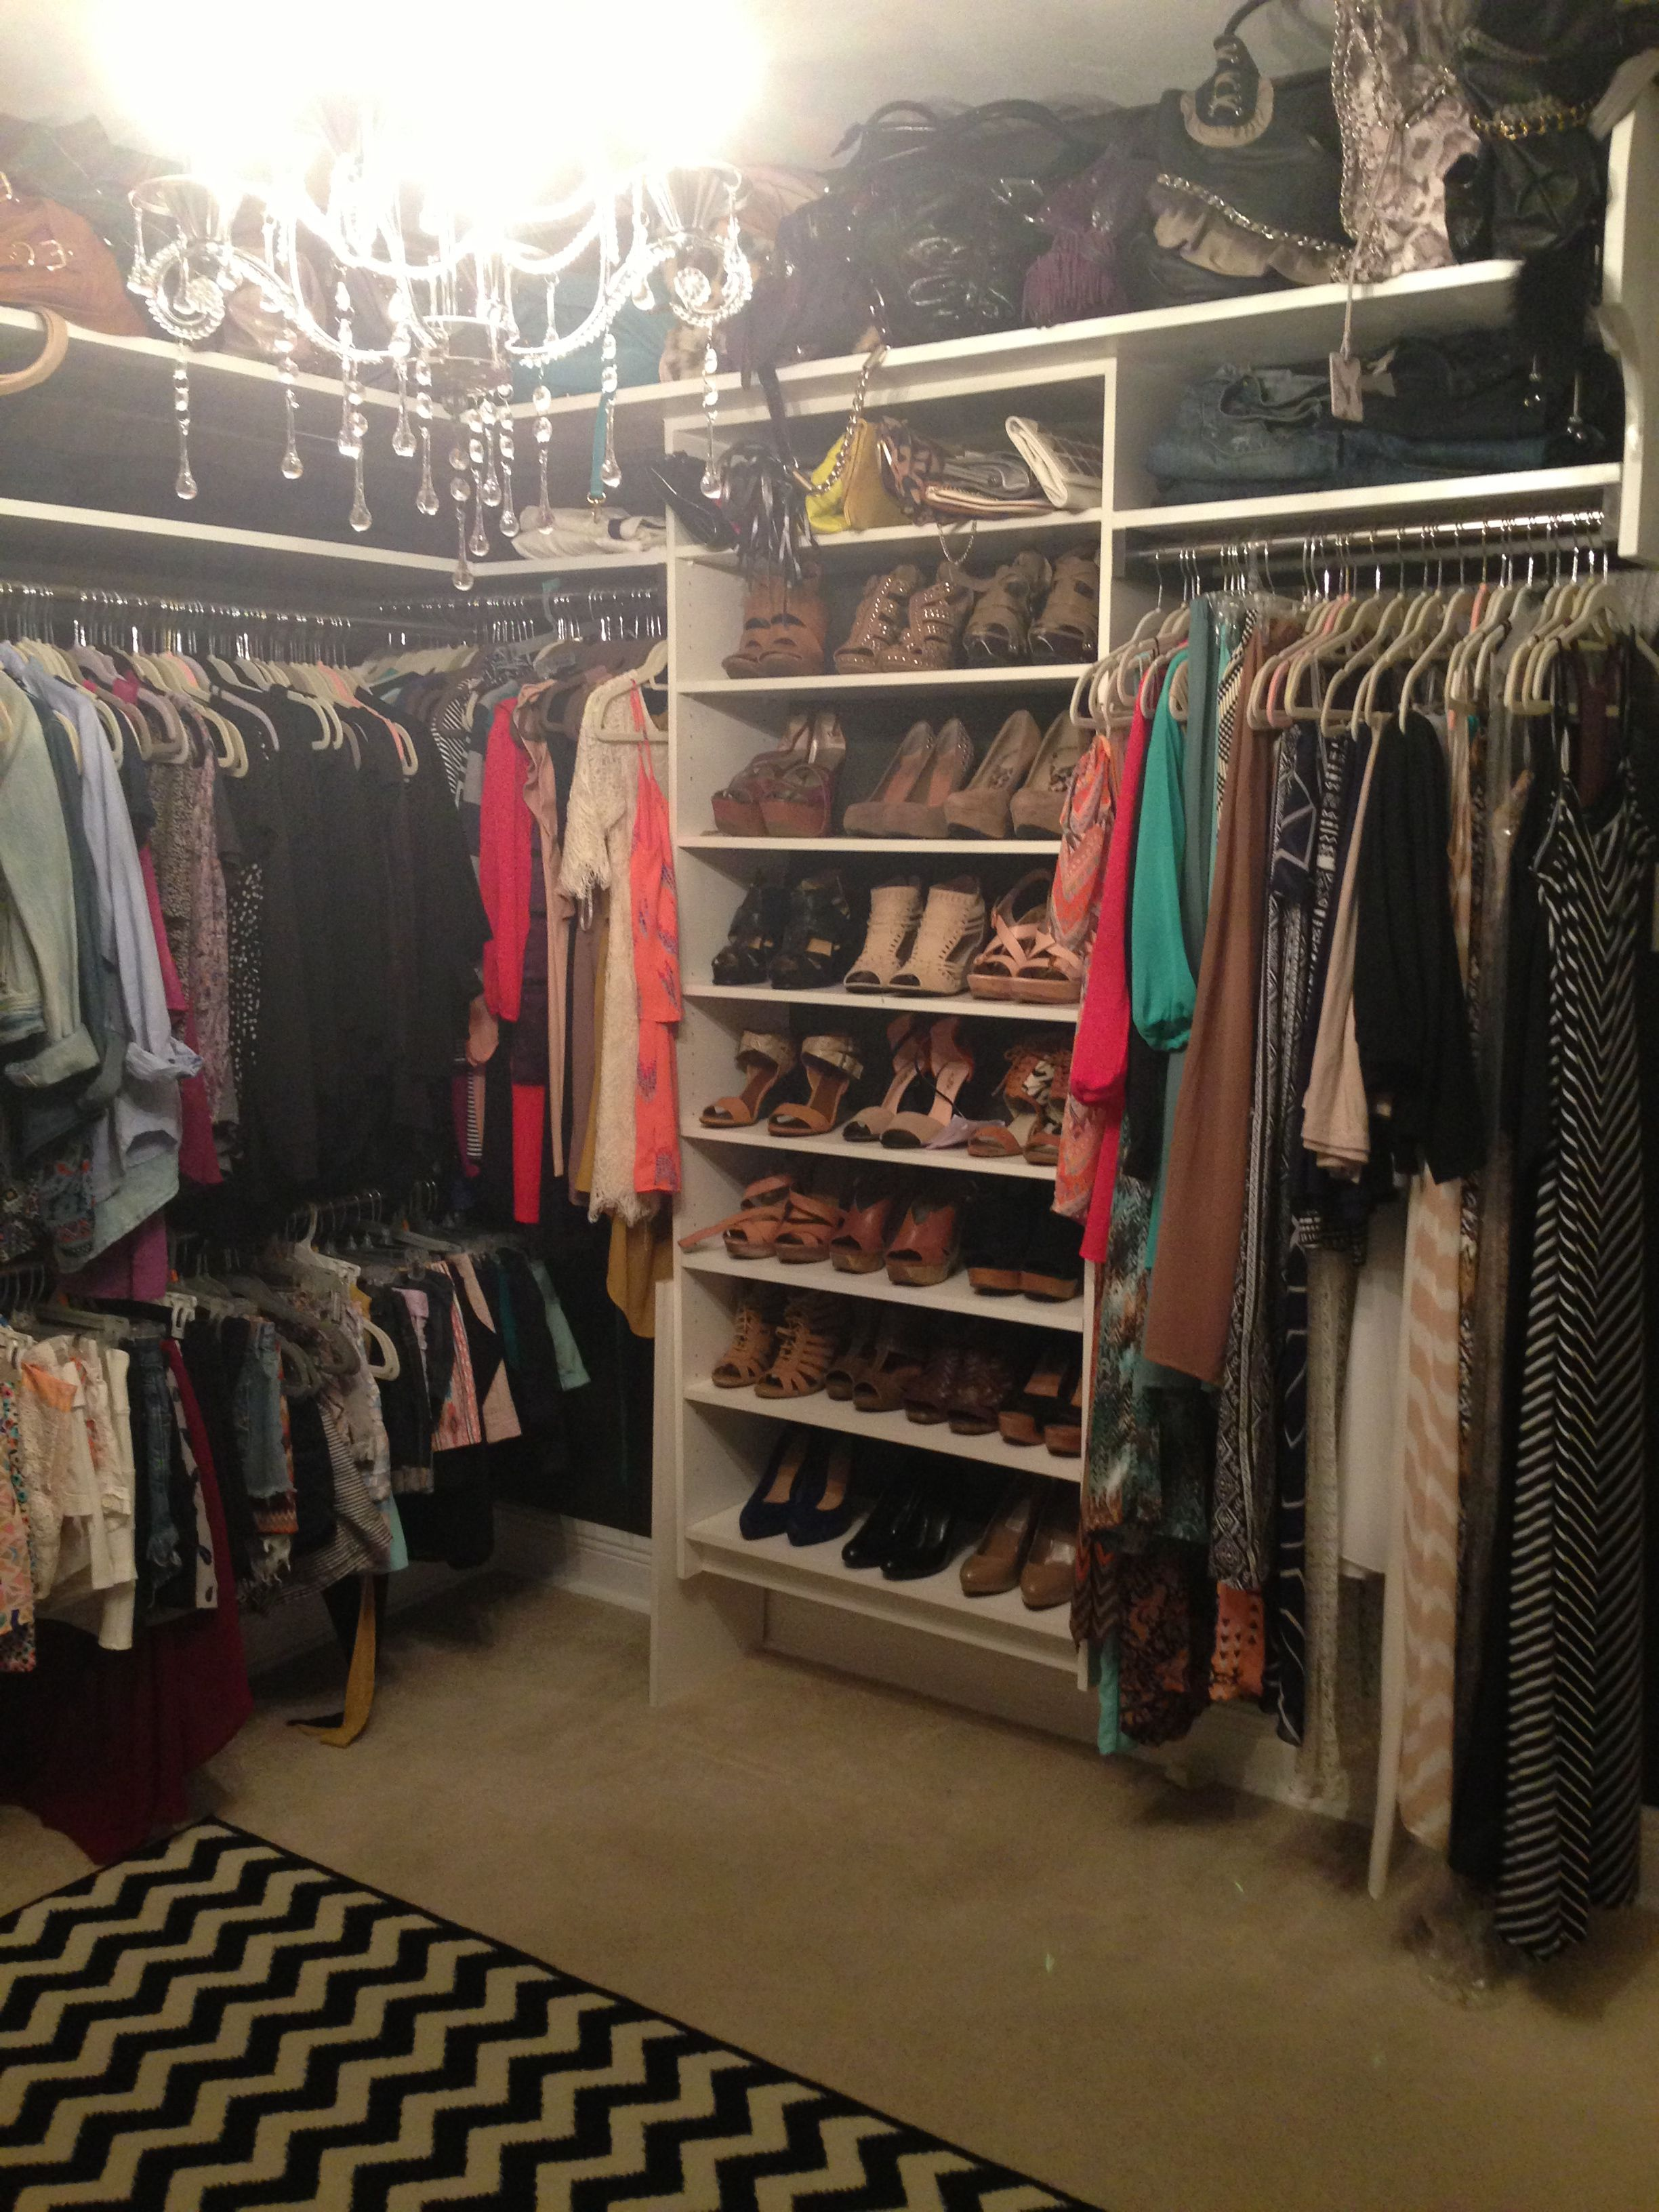 Small Bedroom Converted Into A Closet So Fetch